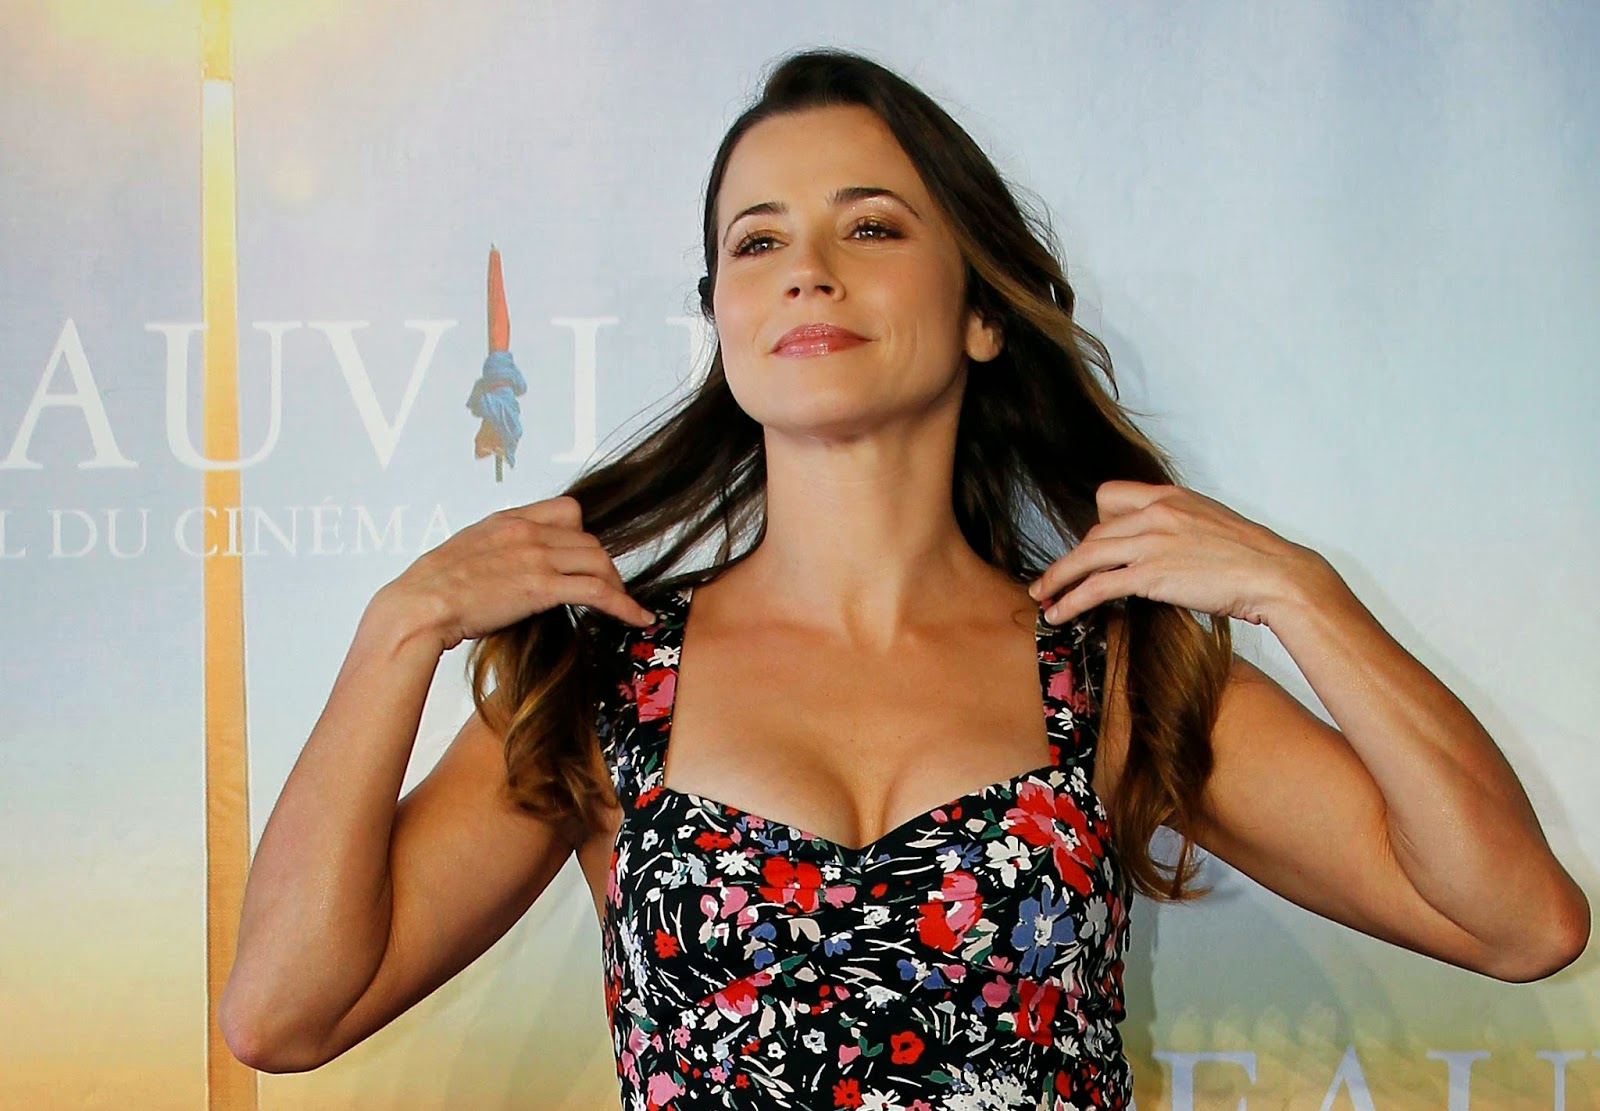 MILFs..de 35 a 45. U-s-actress-linda-cardellini-poses-for-a-photocall-for-her-film-return-during-the-37th-american-film-festival-in-deauville-september-3-2011